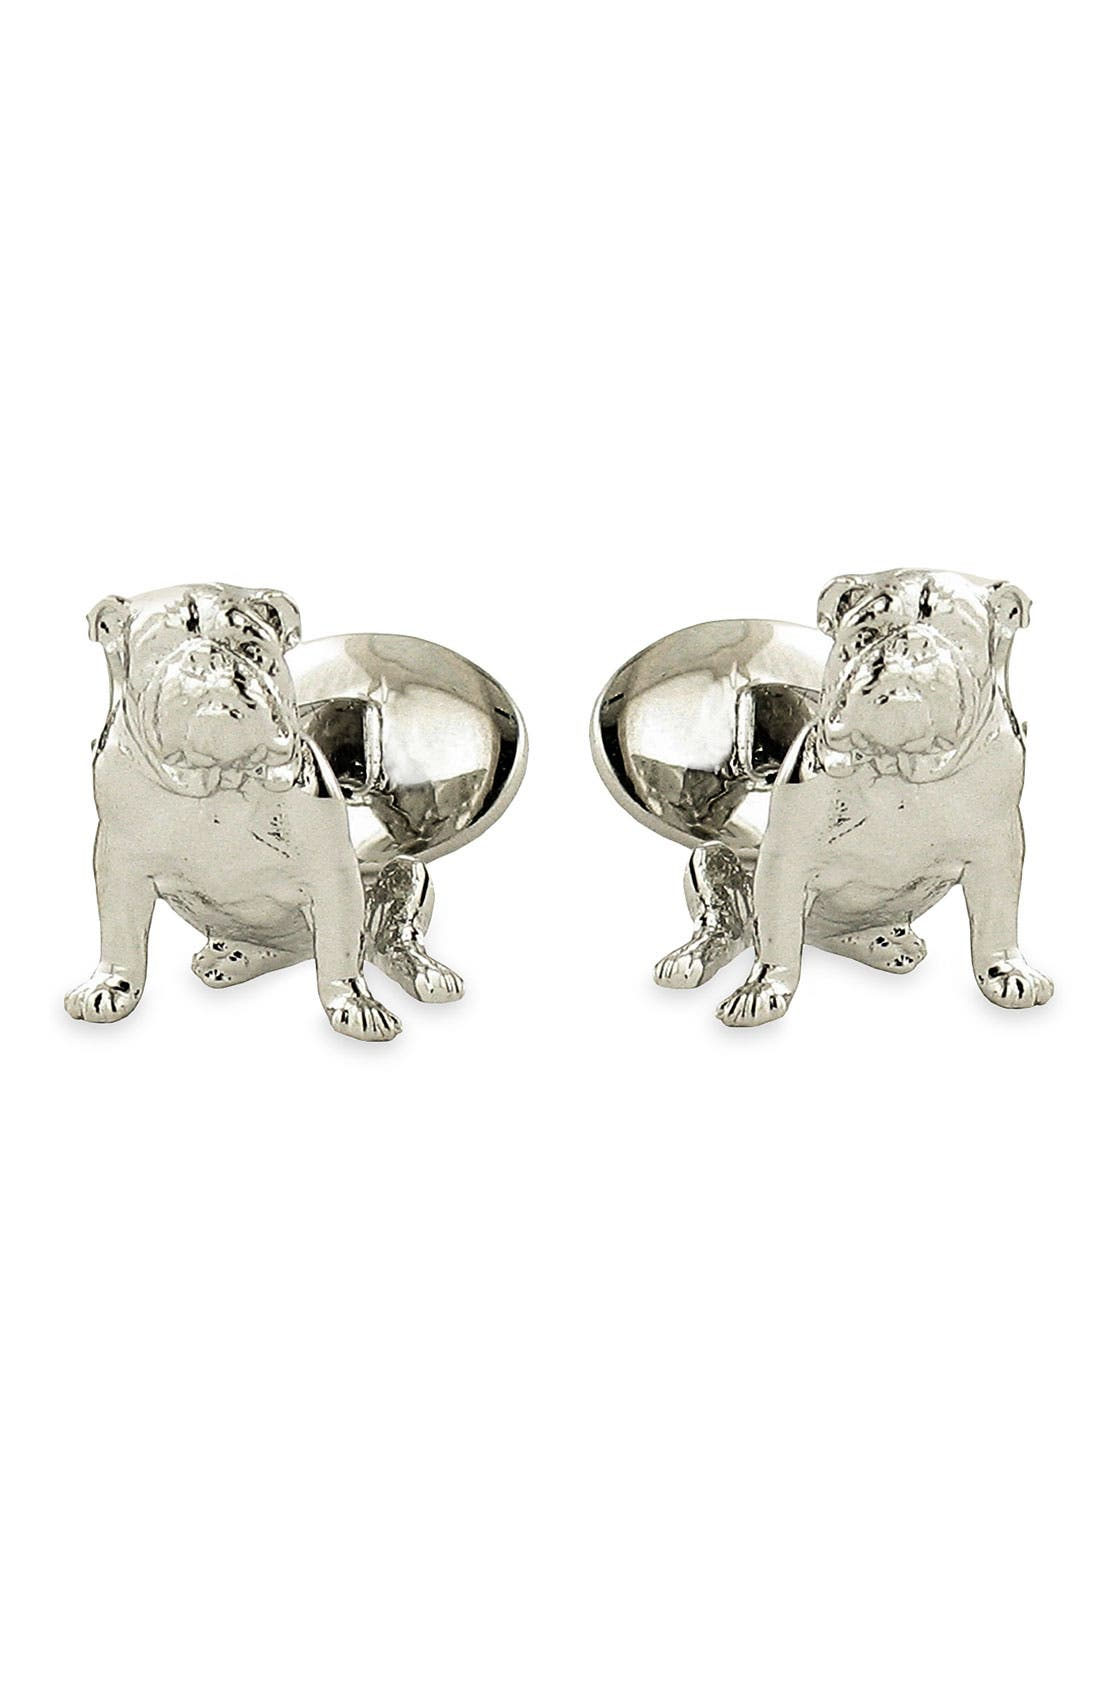 Main Image - David Donahue 'Bulldog' Sterling Silver Cuff Links